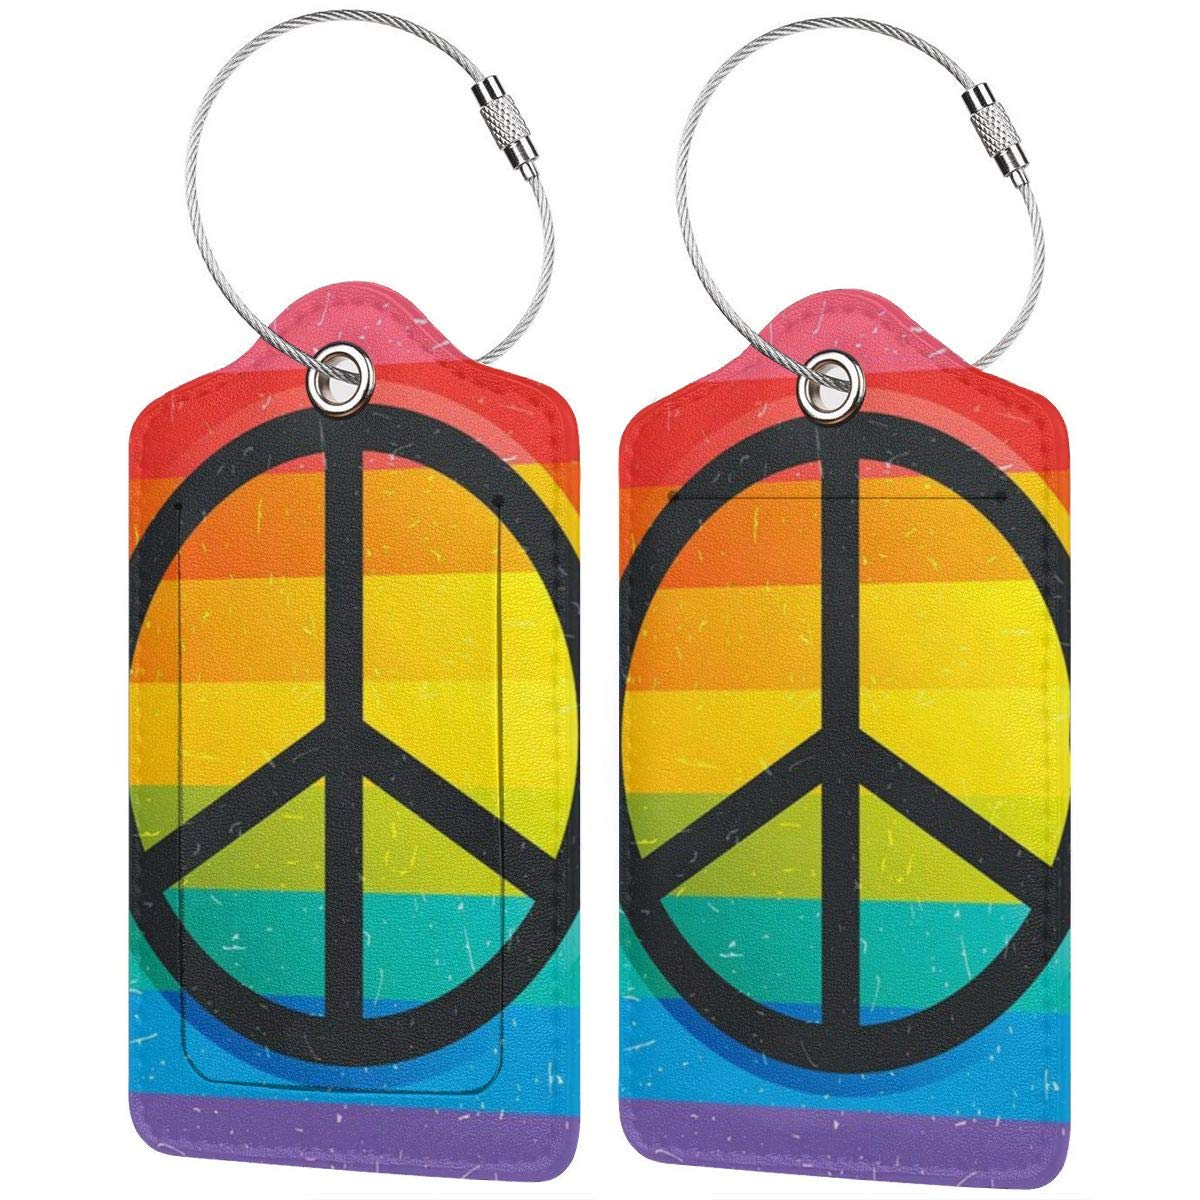 Retro Rainbow Flag Leather Luggage Tags Personalized Travel Accessories With Privacy Flap